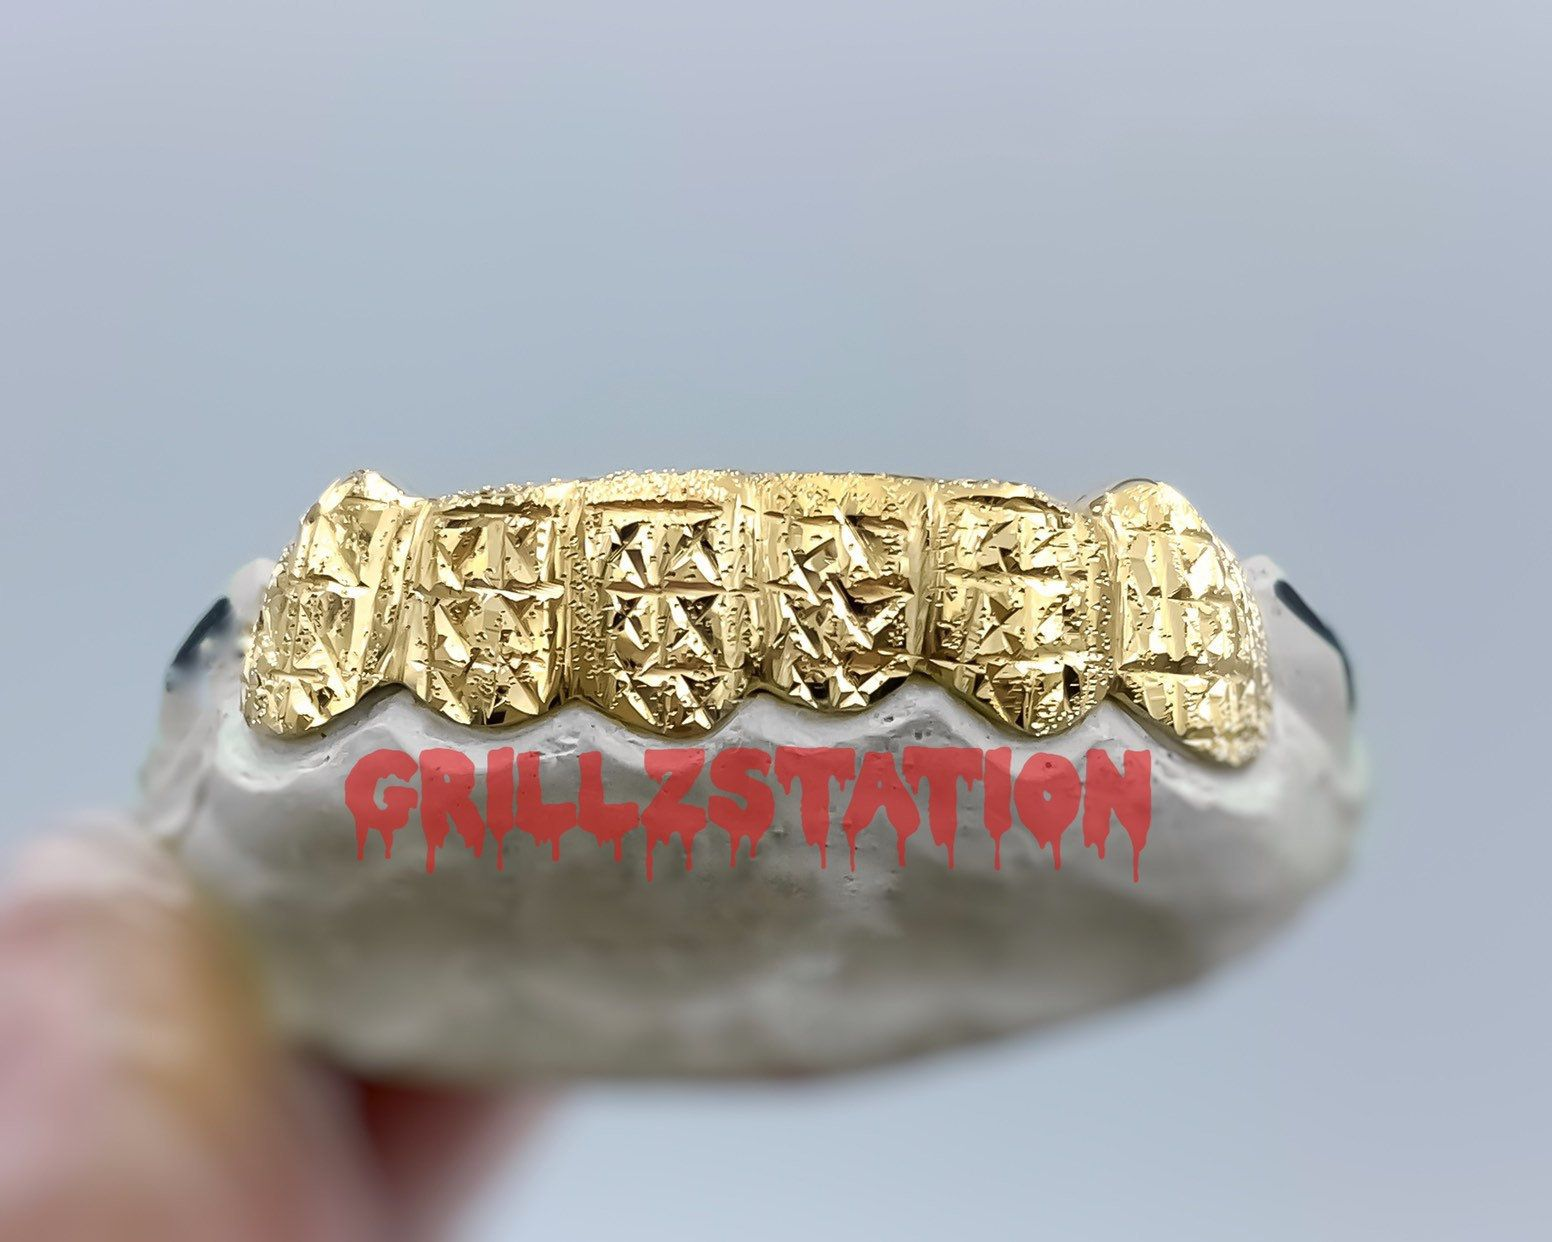 Pin On Permanent Cut Grillz